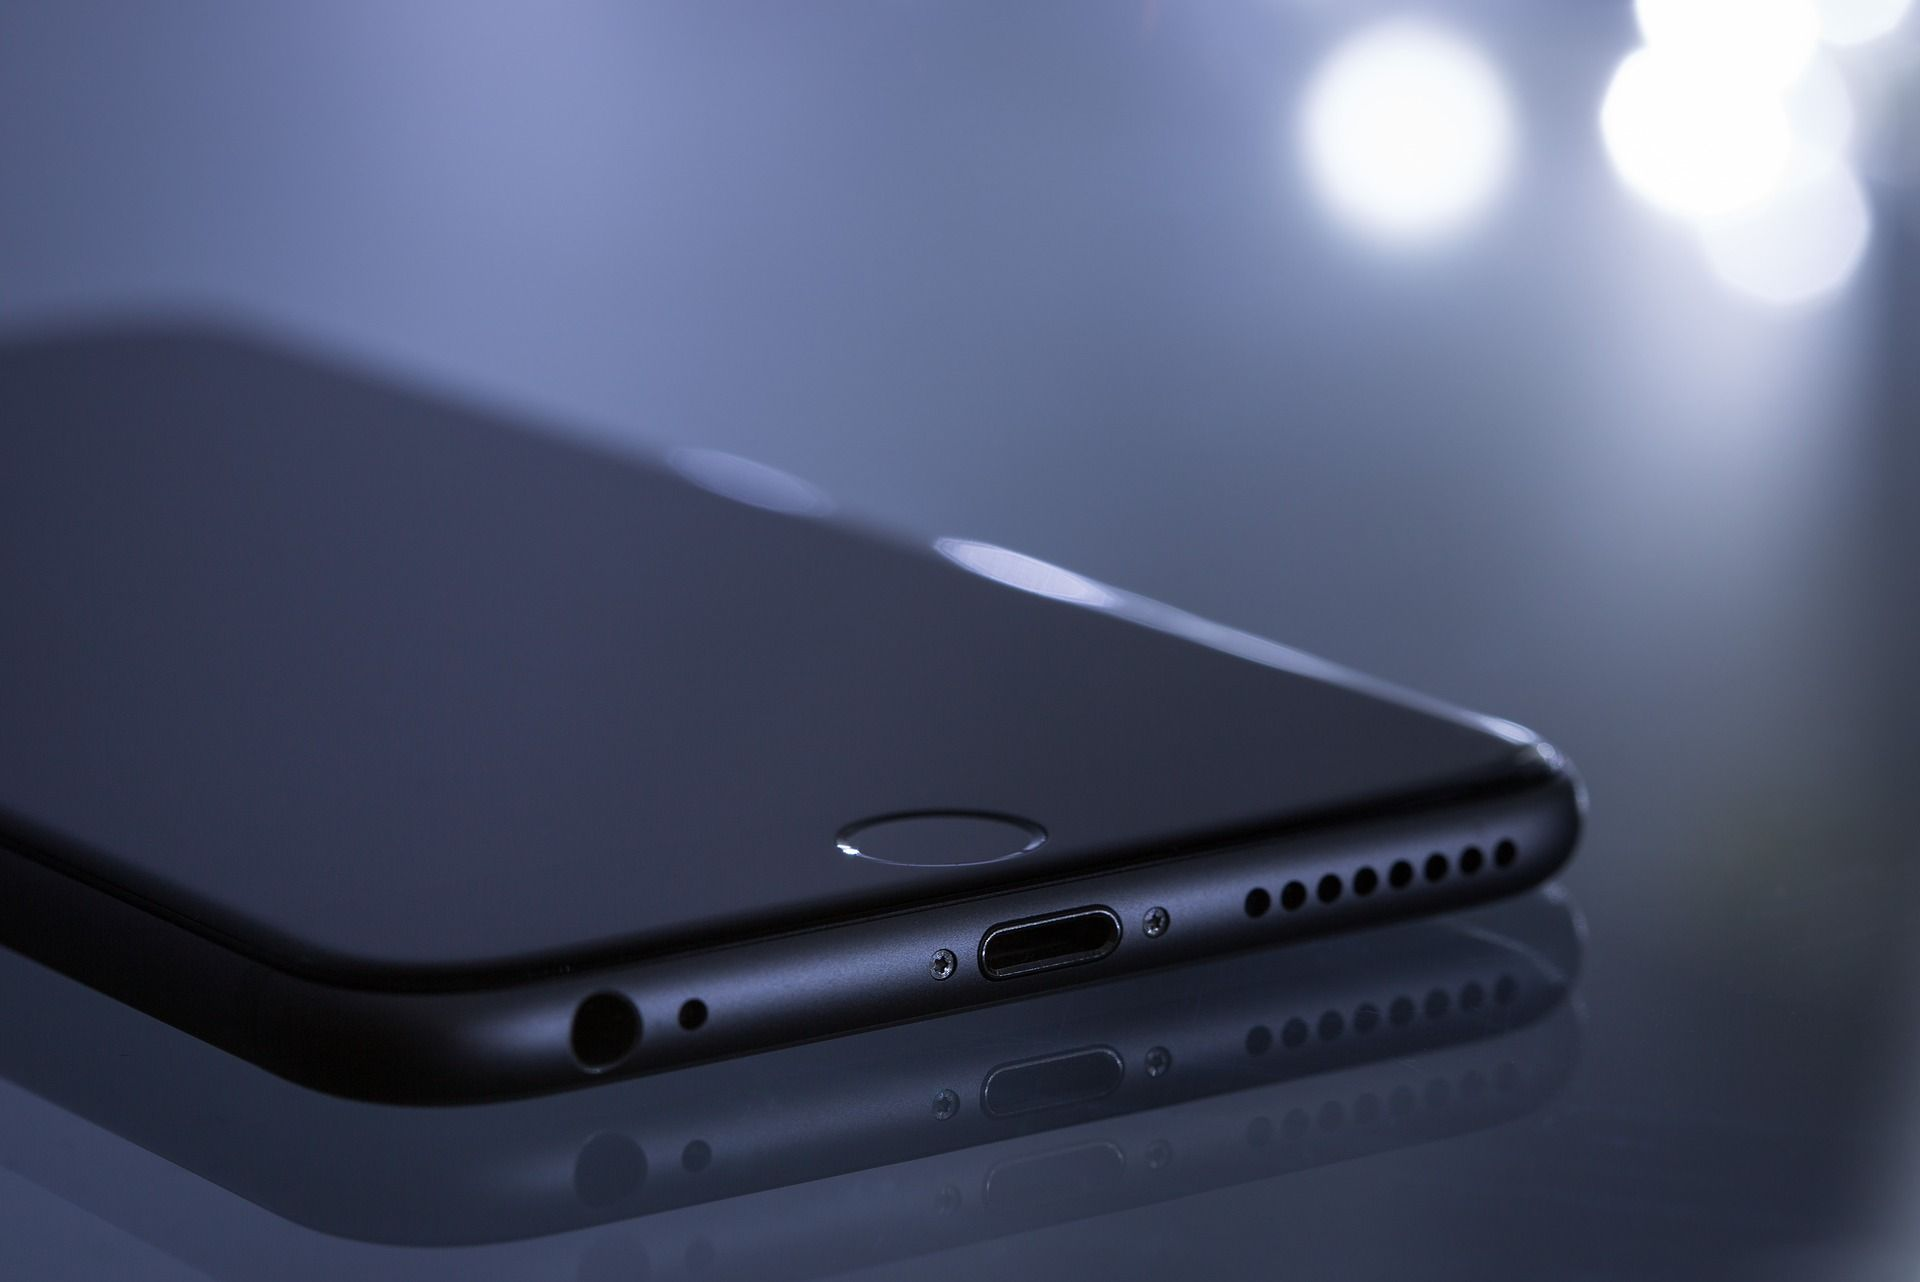 /how-imei-helps-track-and-identify-lost-or-stolen-iphones-0p3o312f feature image